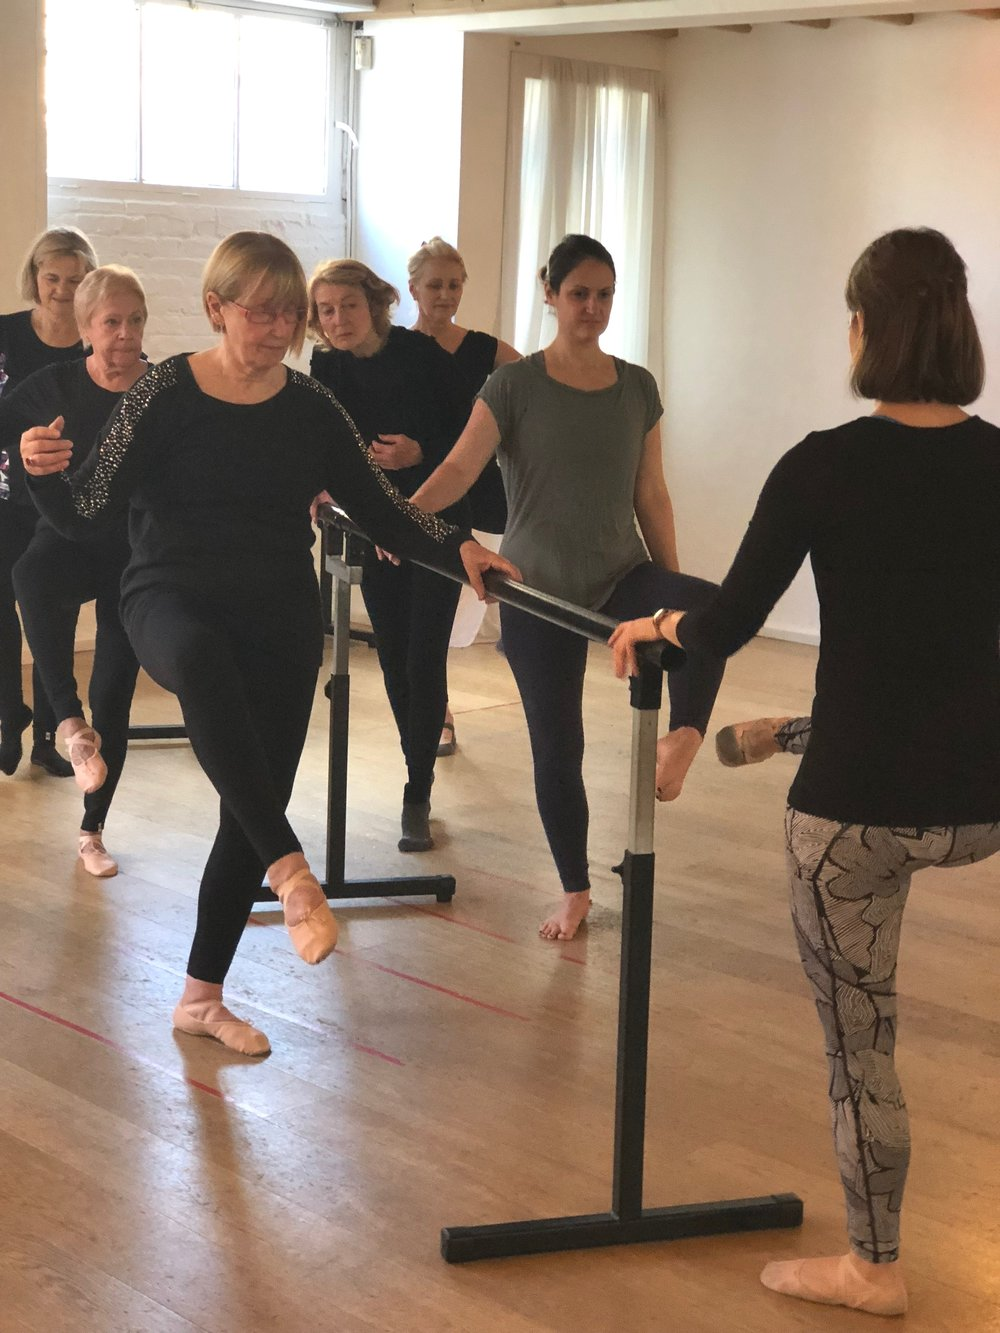 Our Introduction to the Barre class- everyone welcome!